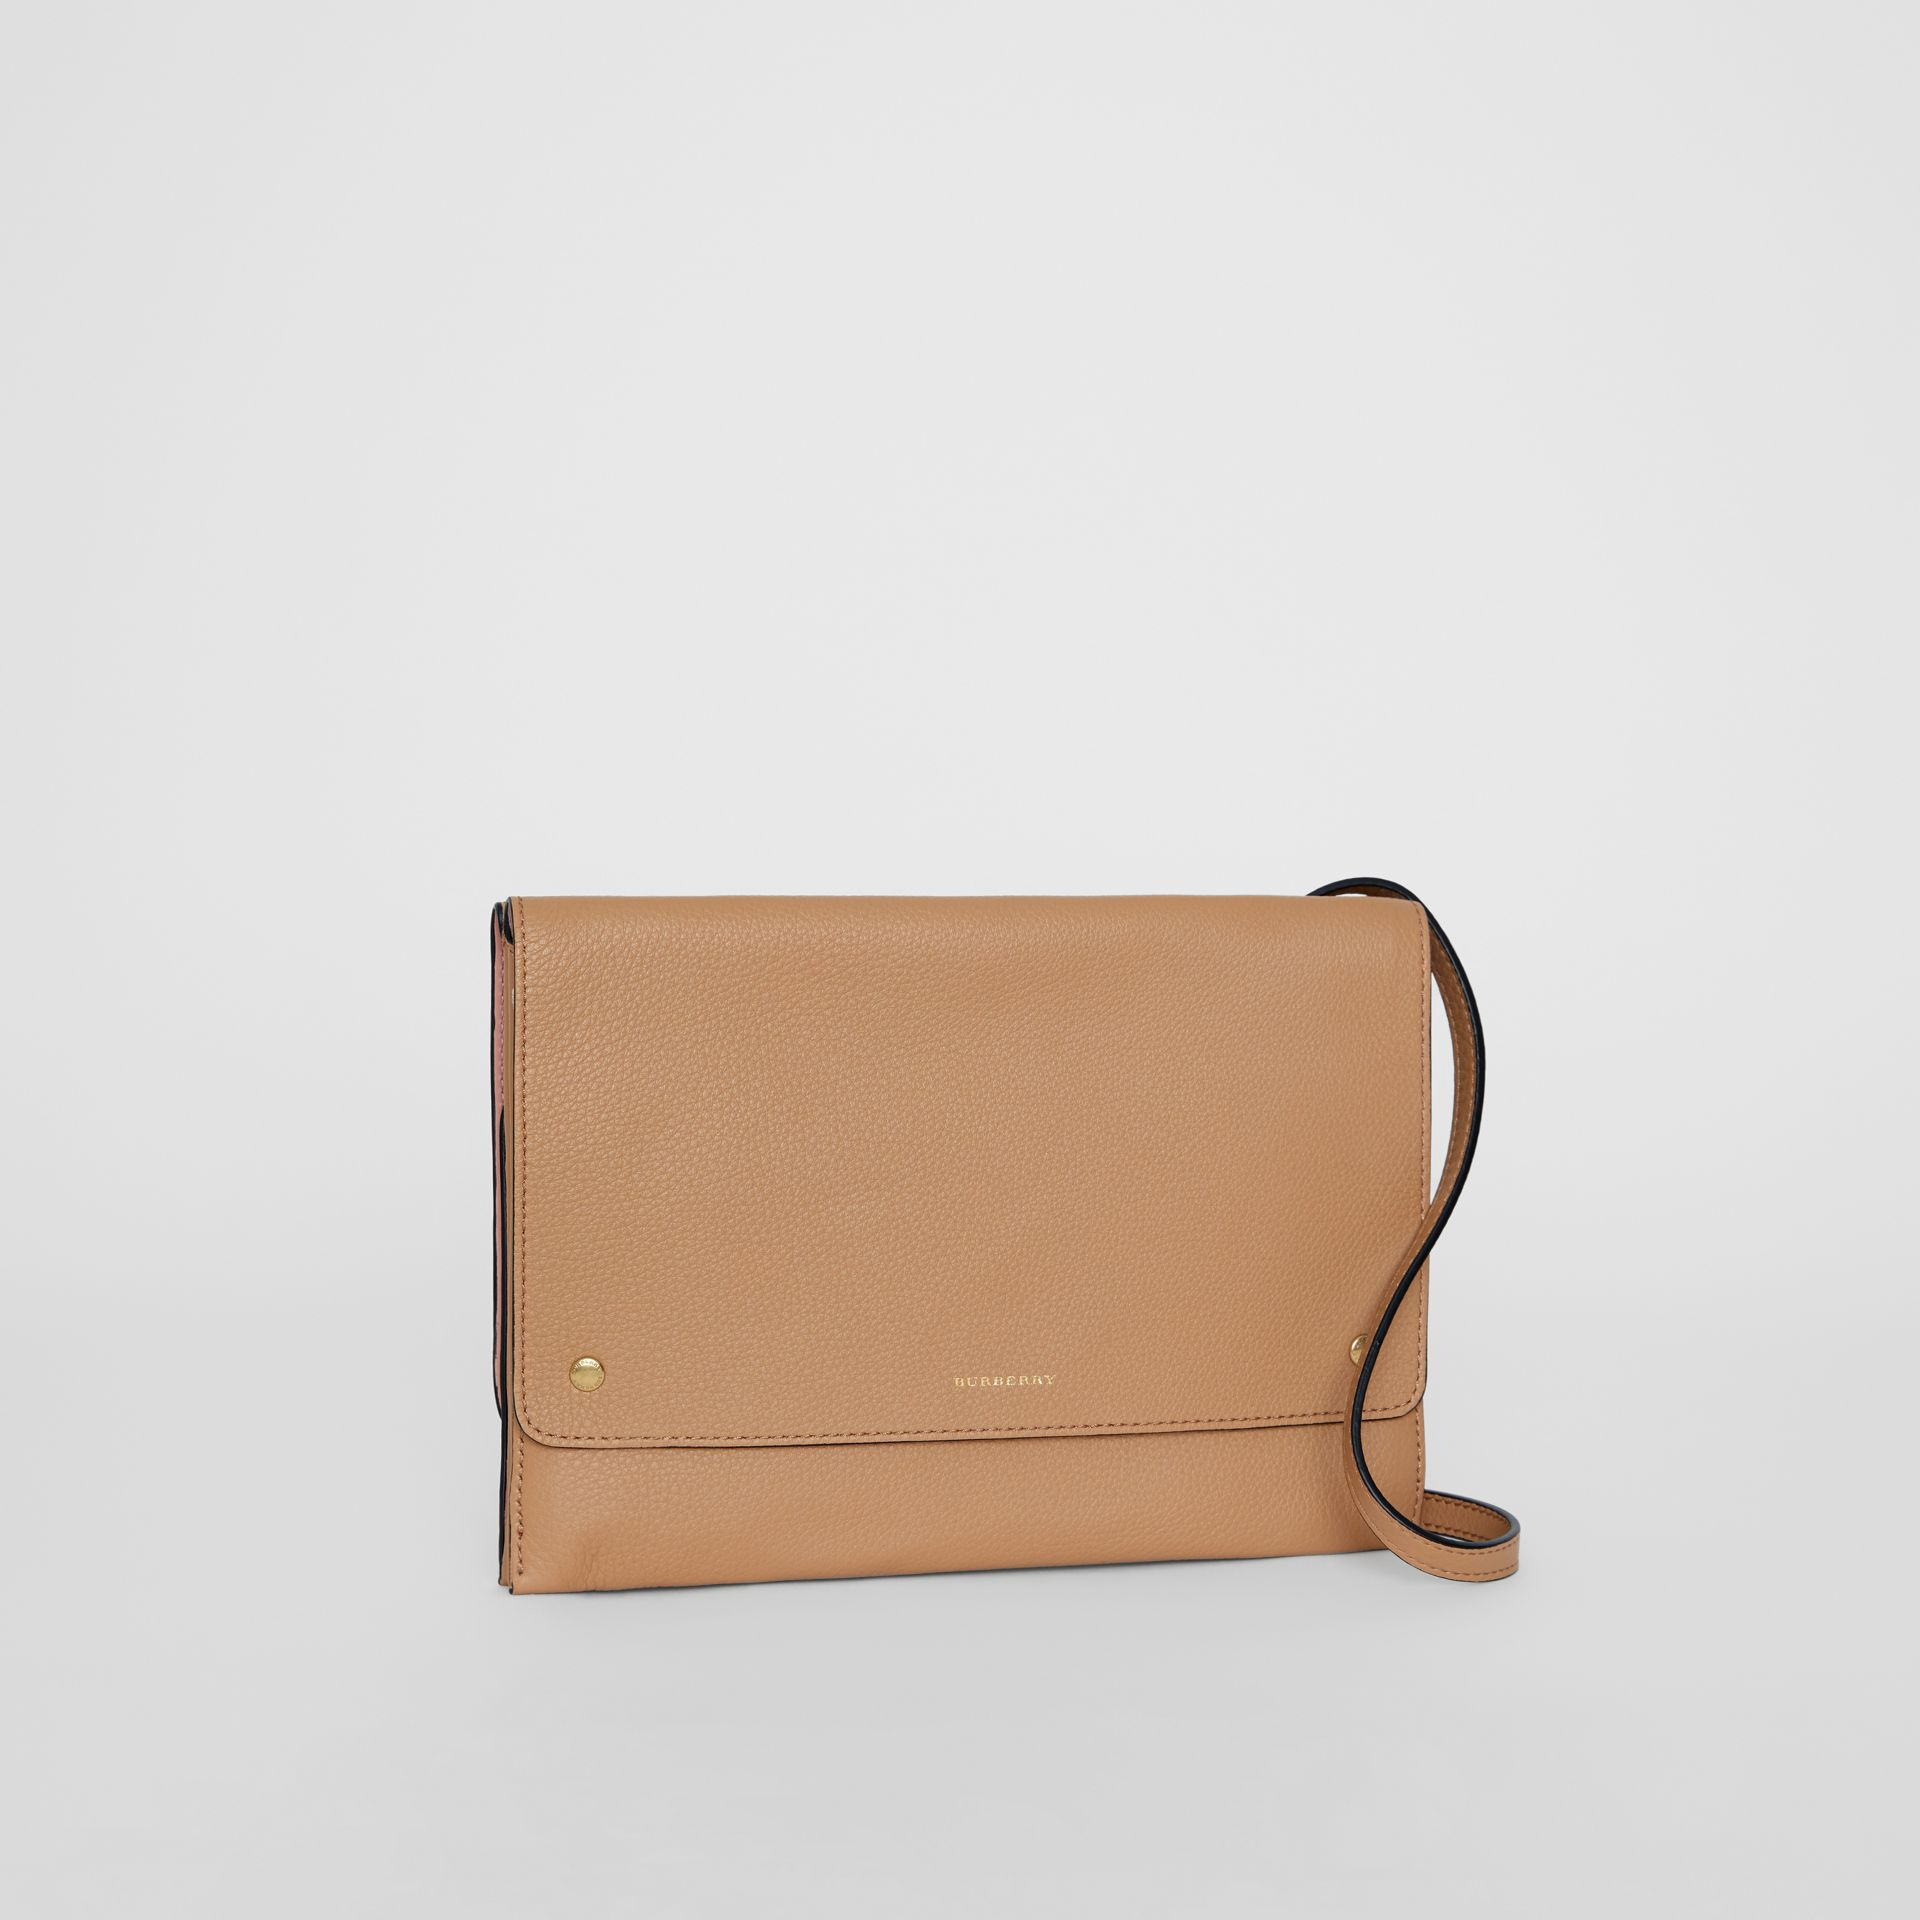 Leather Envelope Crossbody Bag in Light Camel - Women | Burberry - gallery image 6